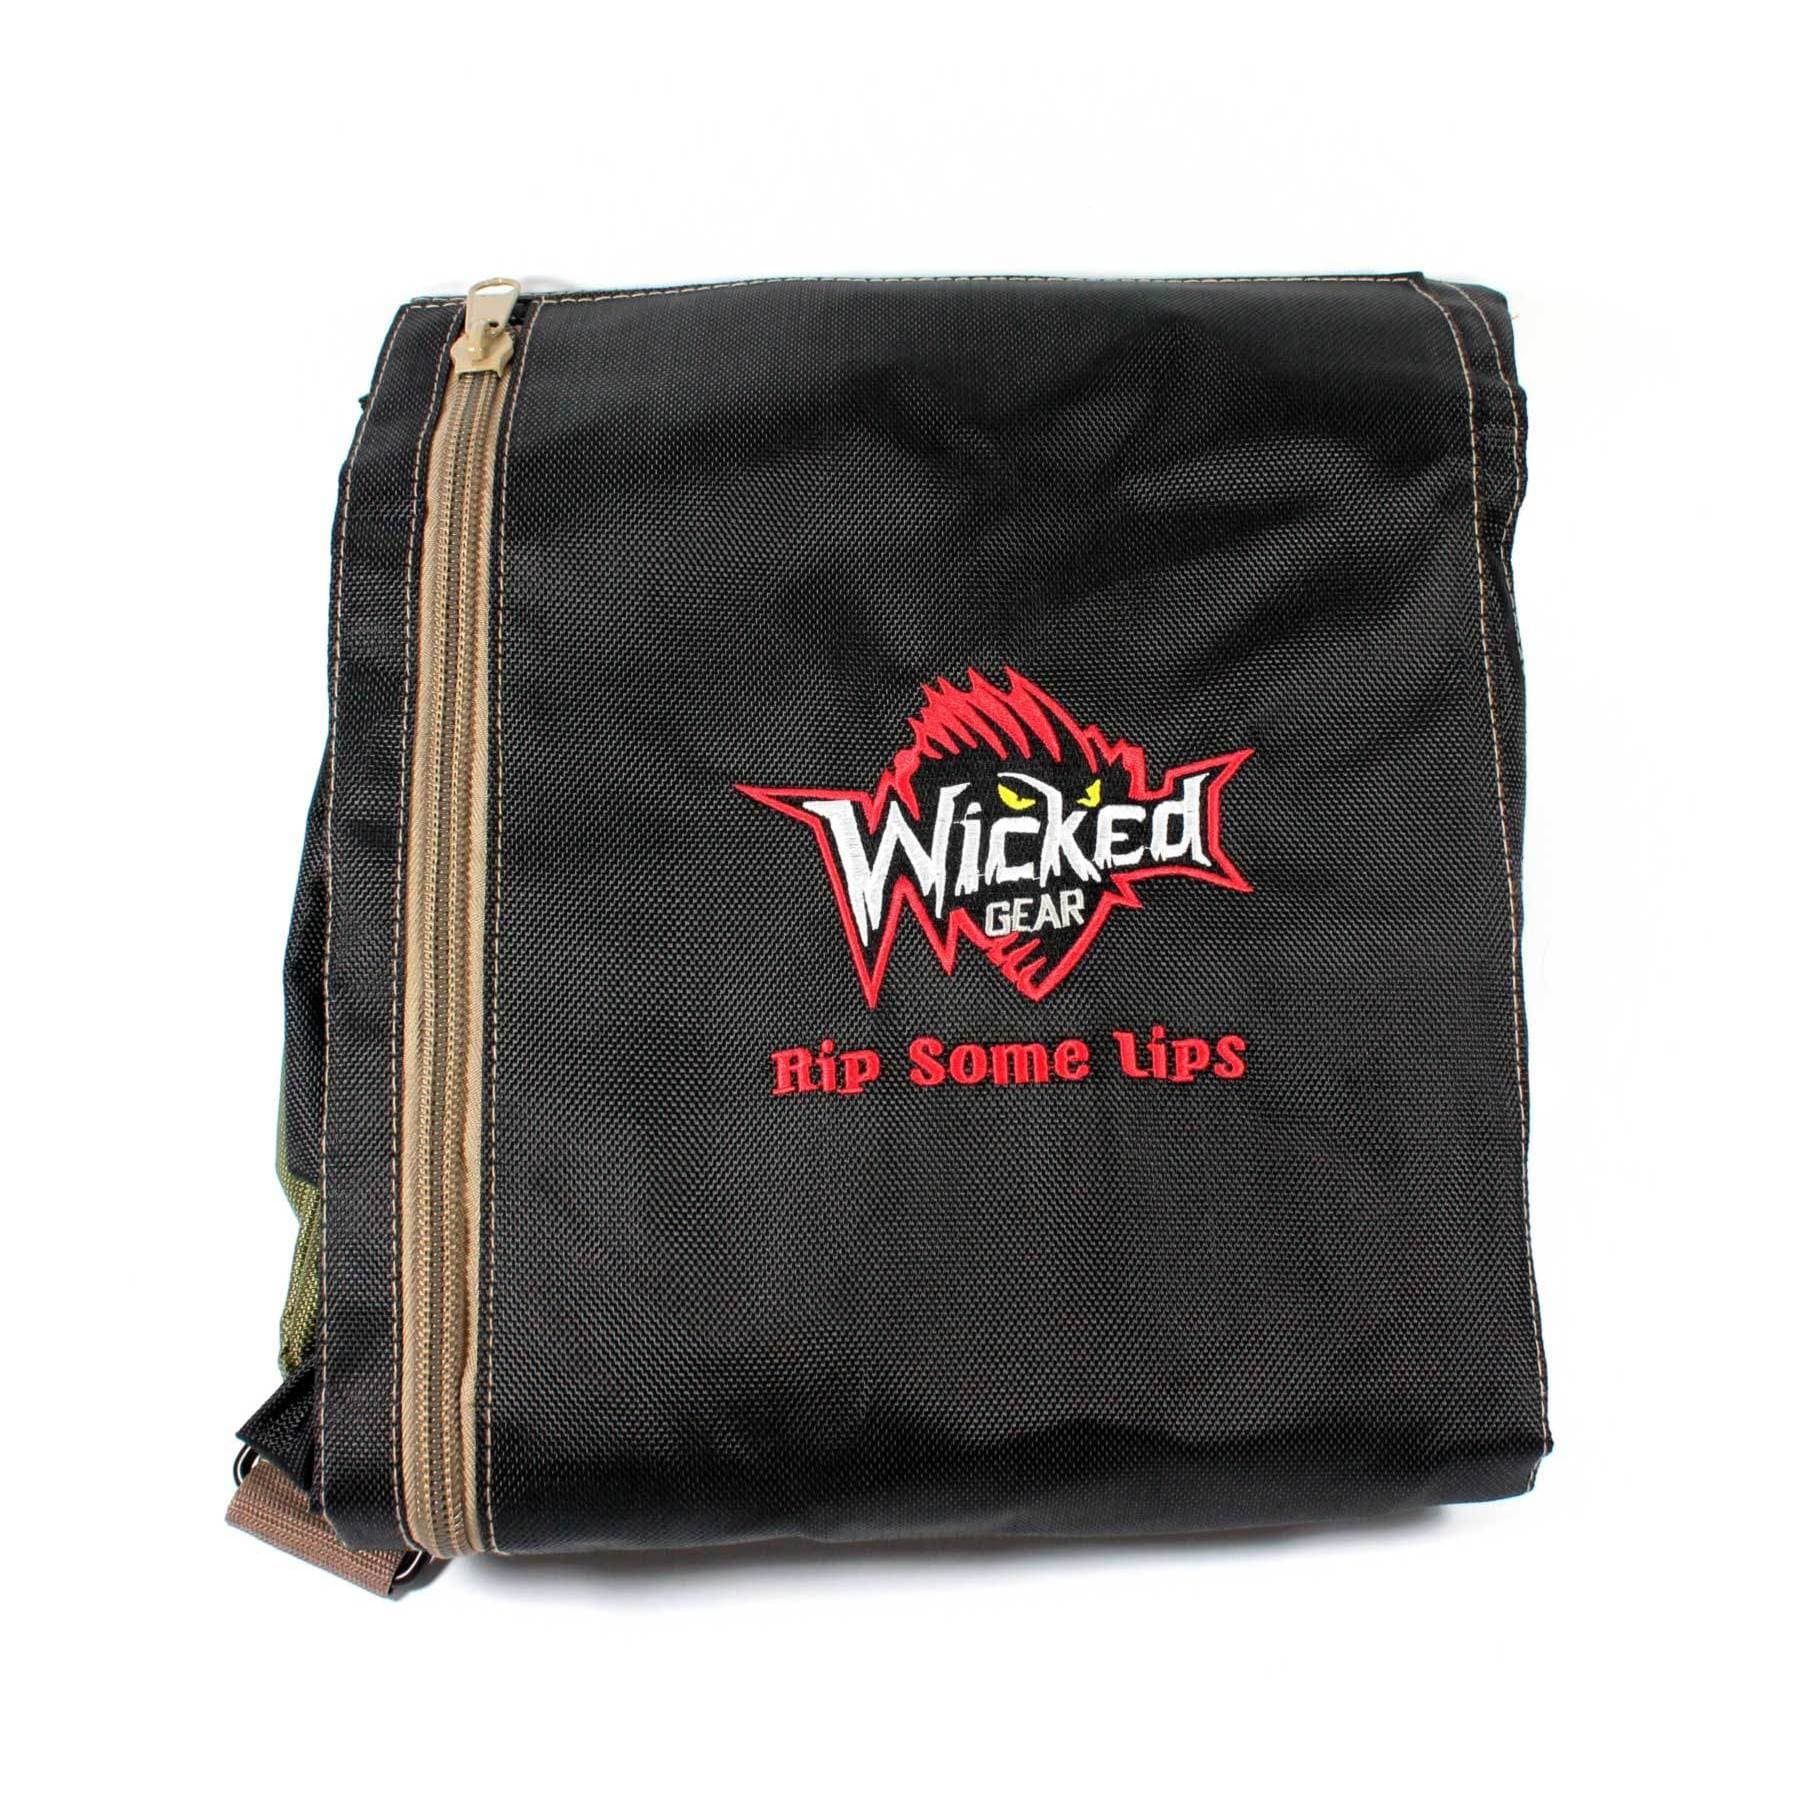 970a29906373 Shop Wicked Black 39-inch Travel  Gear Duffle Bag - Free Shipping On Orders  Over  45 - Overstock - 9435469